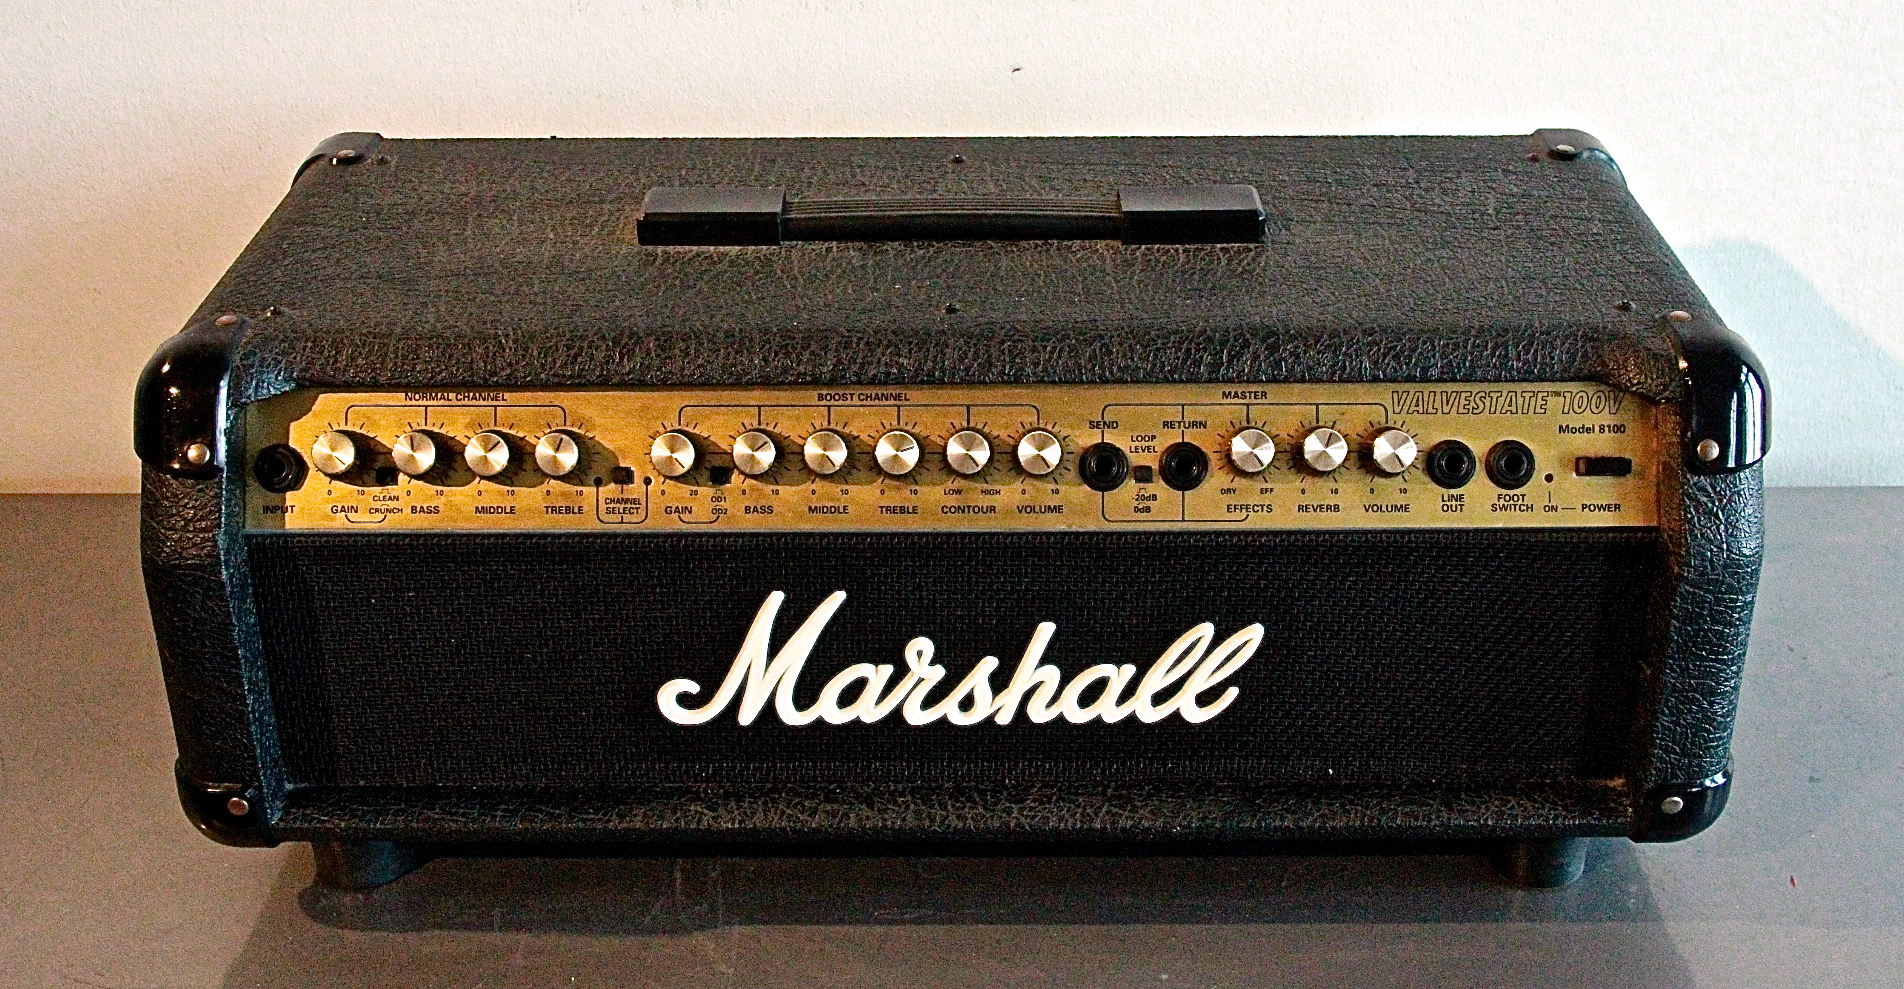 Marshall 8100 for sale